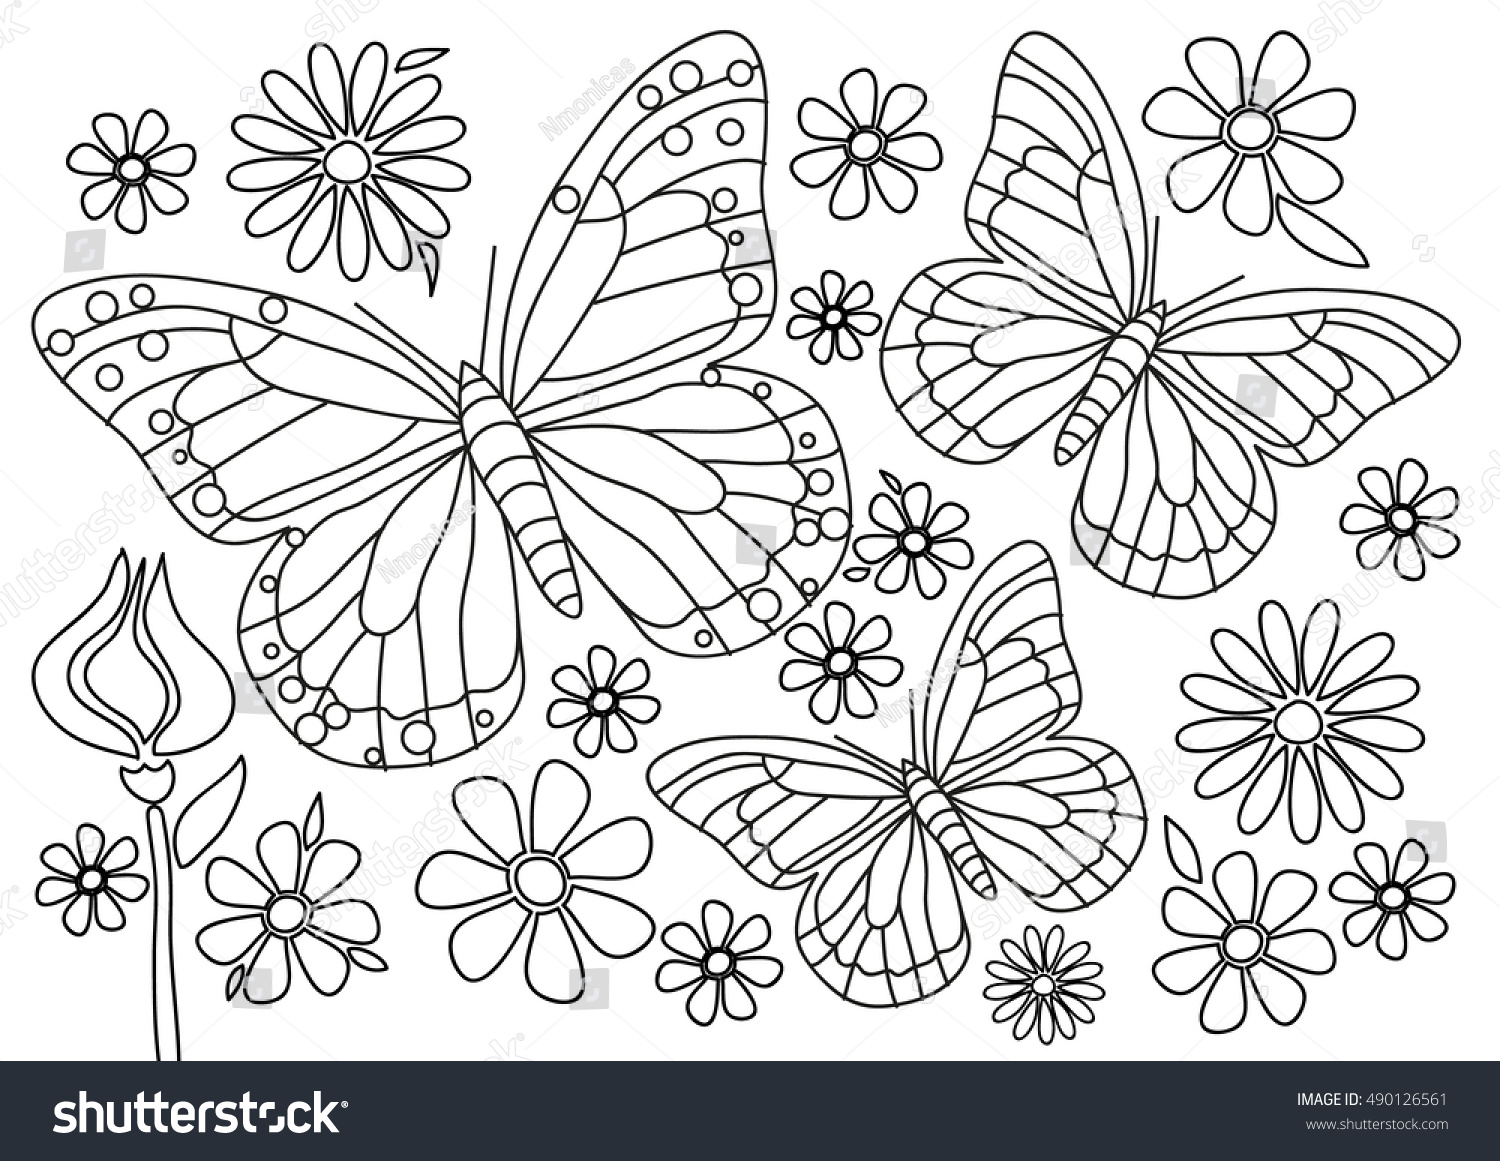 Coloring Page Butterflies Flowers Stock Vector 490126561 - Shutterstock